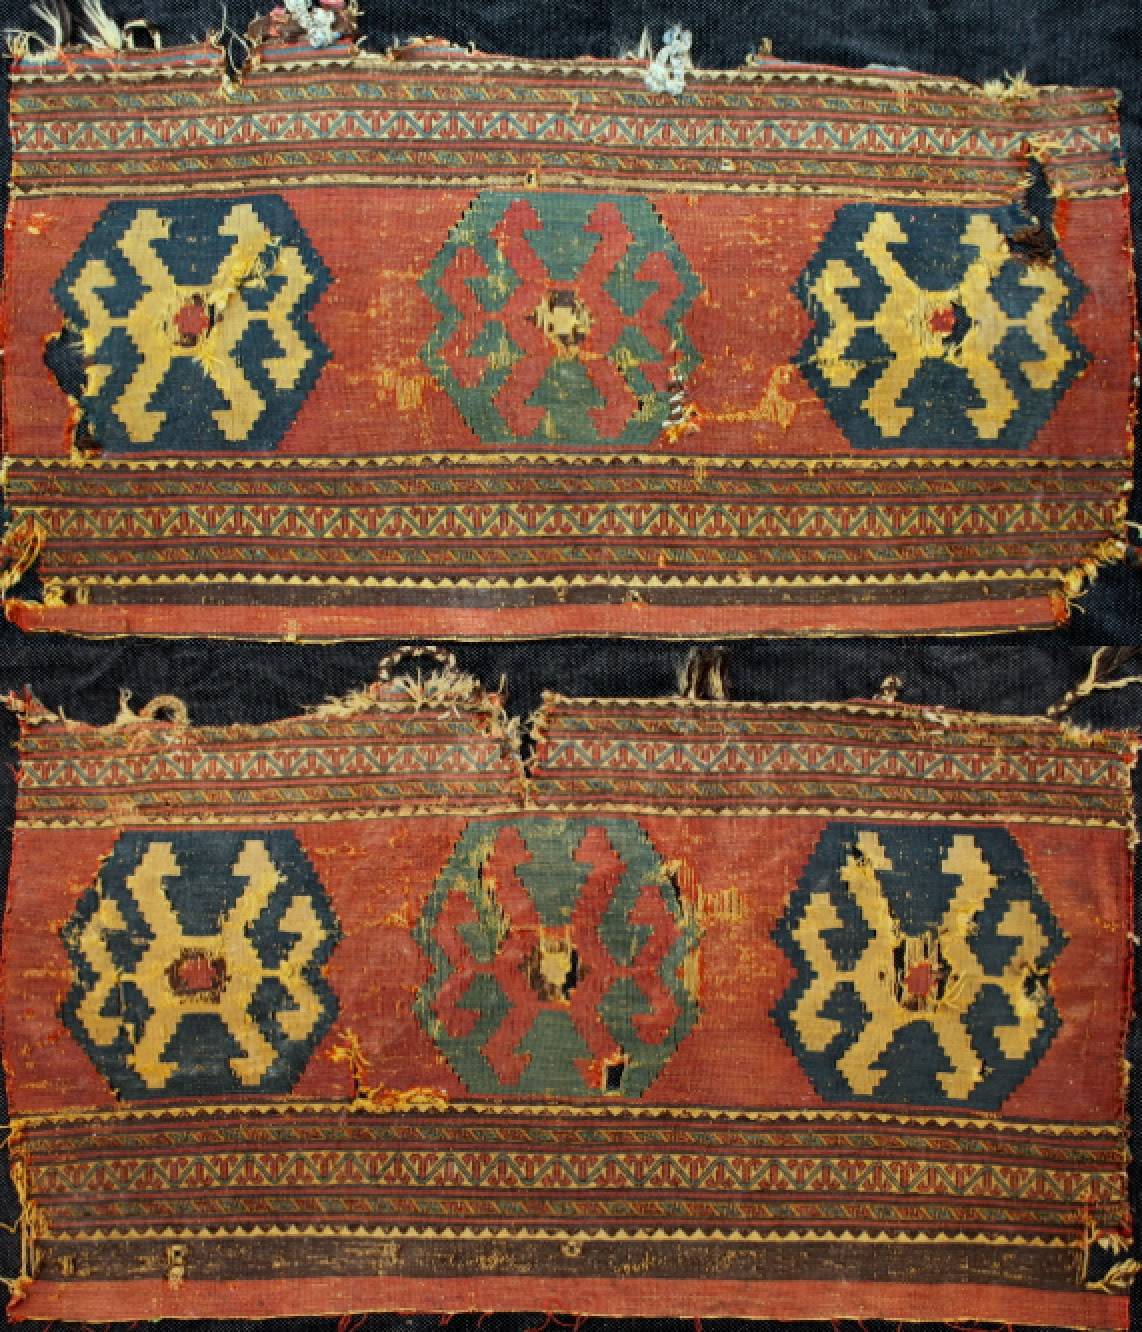 Anatolian Kilim Rugs, Antiques And Tribal Textiles: Old